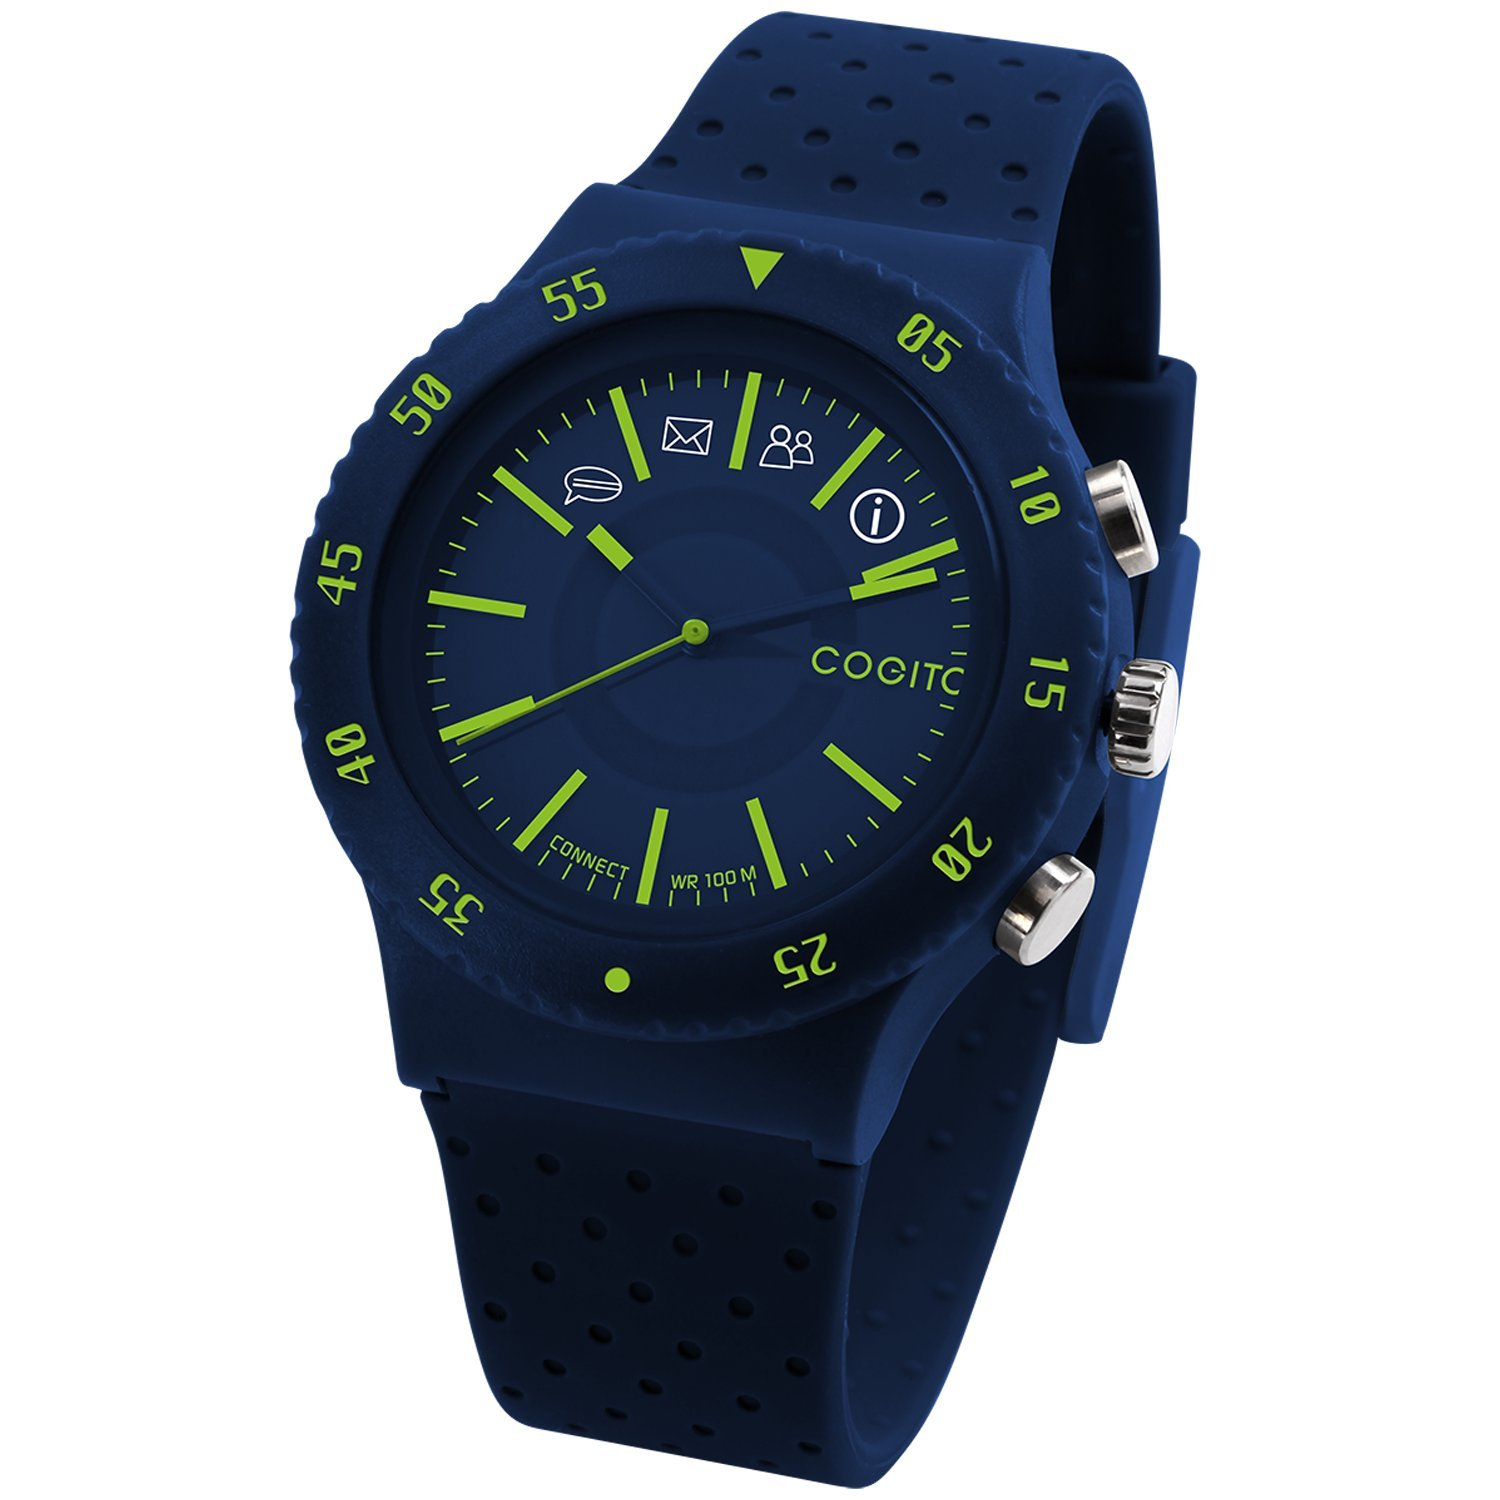 COGITO POP Smart Bluetooth Connected Watch - Blue Electric by COGITO